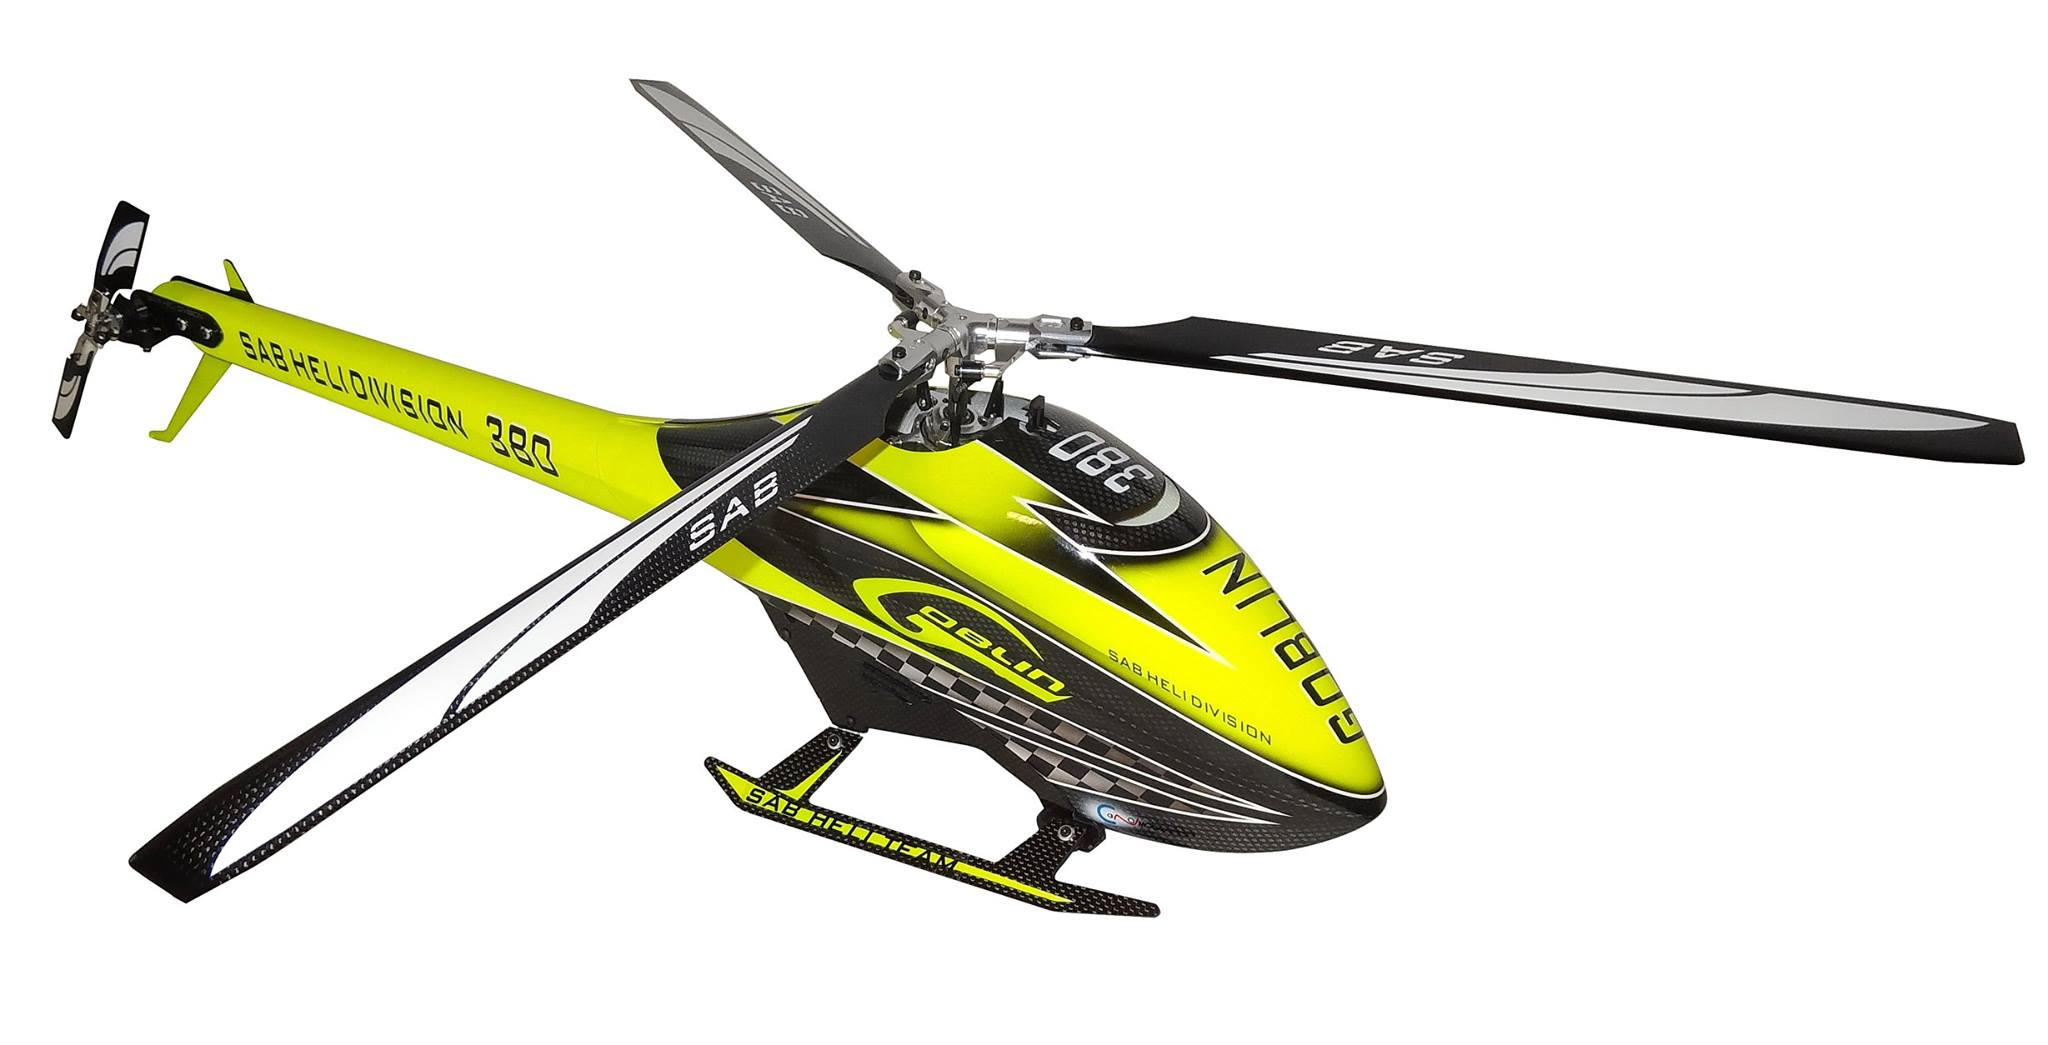 blade helicopters with Sab Goblin 380 3 Blatt Kyle Stacy Edition Inkl  Ro on Cardboard Airplane also K1 in addition Outdoor Helicopter additionally Blade Cx2 Rtf Electric Coaxial Micro Helicopter Eflh1250 further Nano Qx.